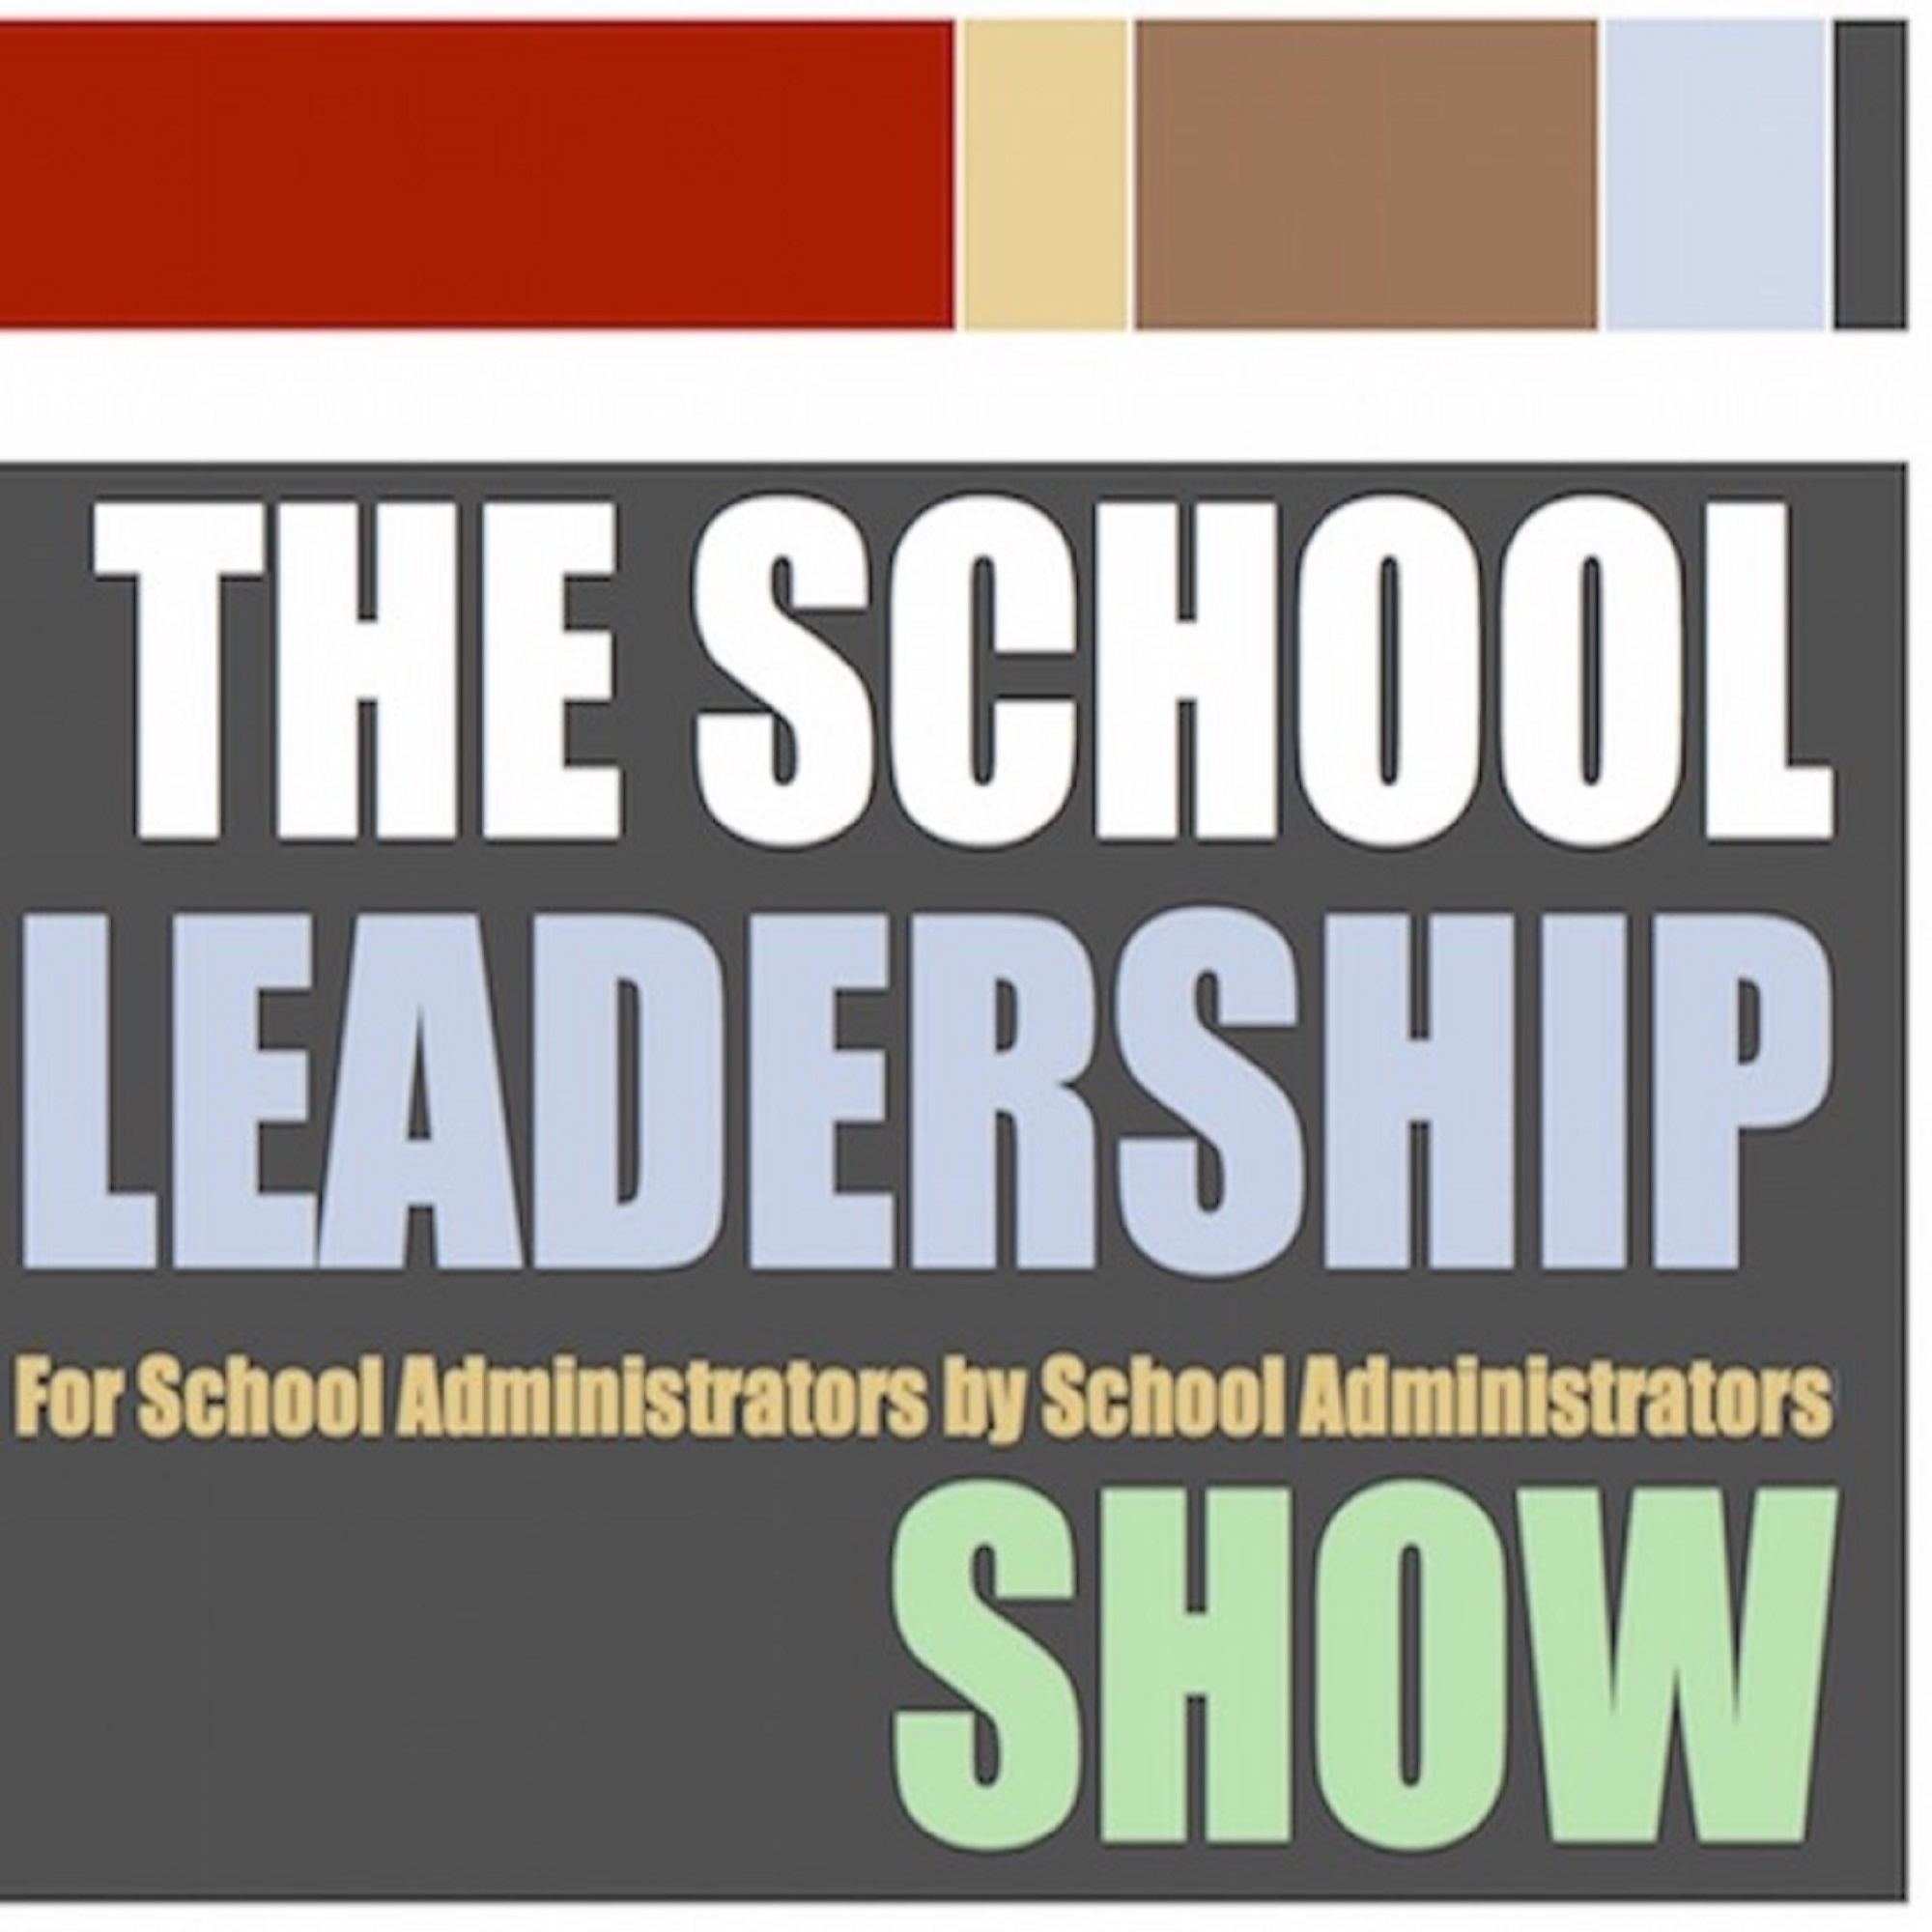 The School Leadership Show show art